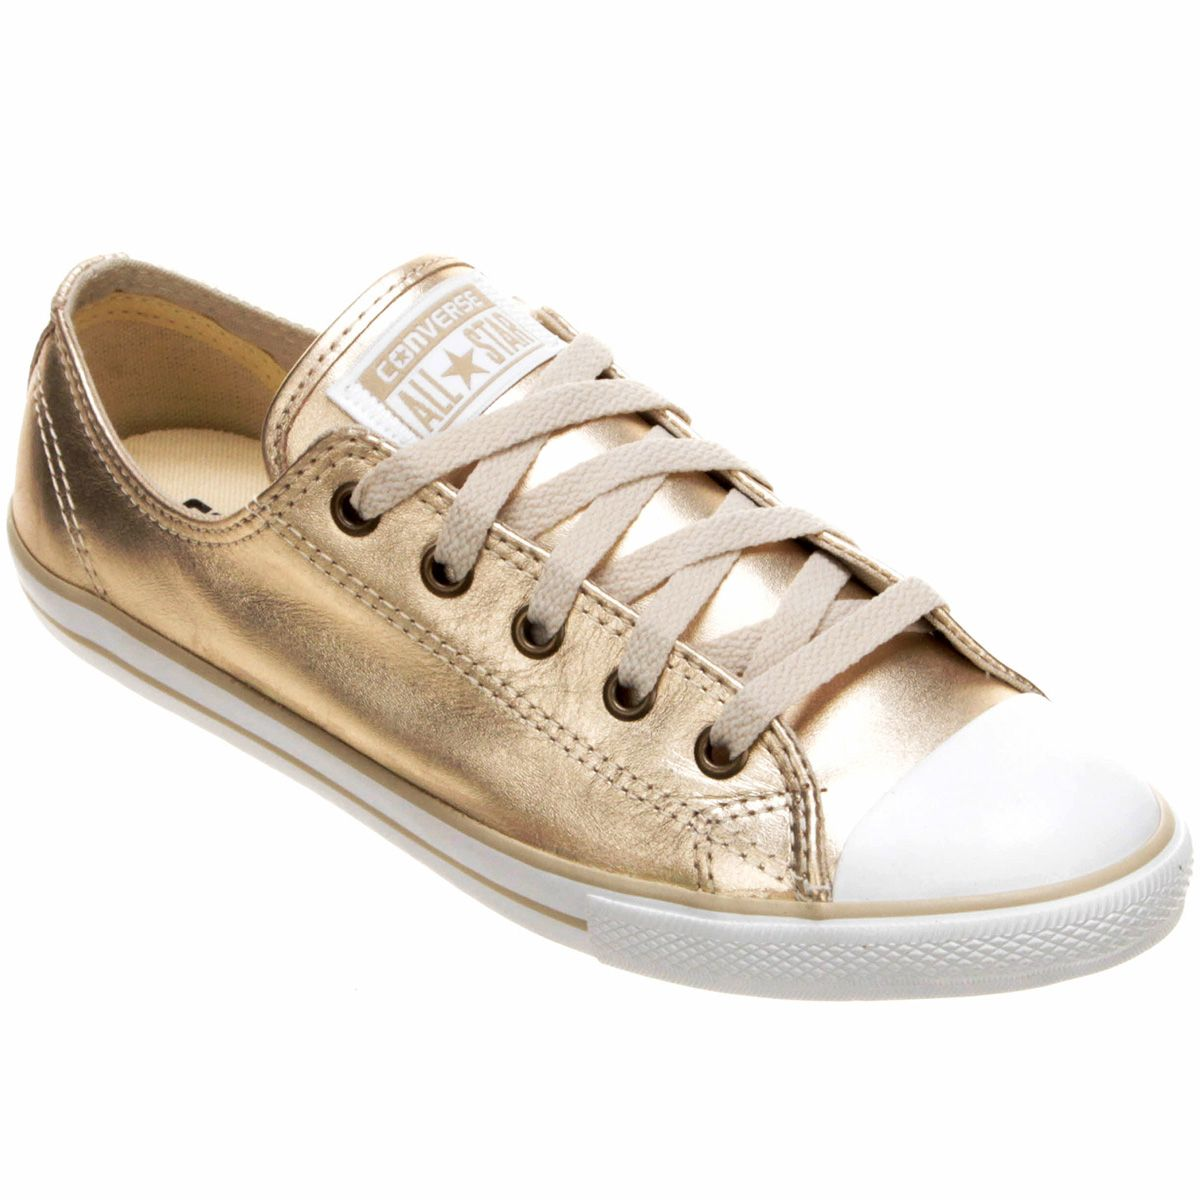 9d7e58348 Tênis Converse All Star CT AS Dainty Leather OX Bege